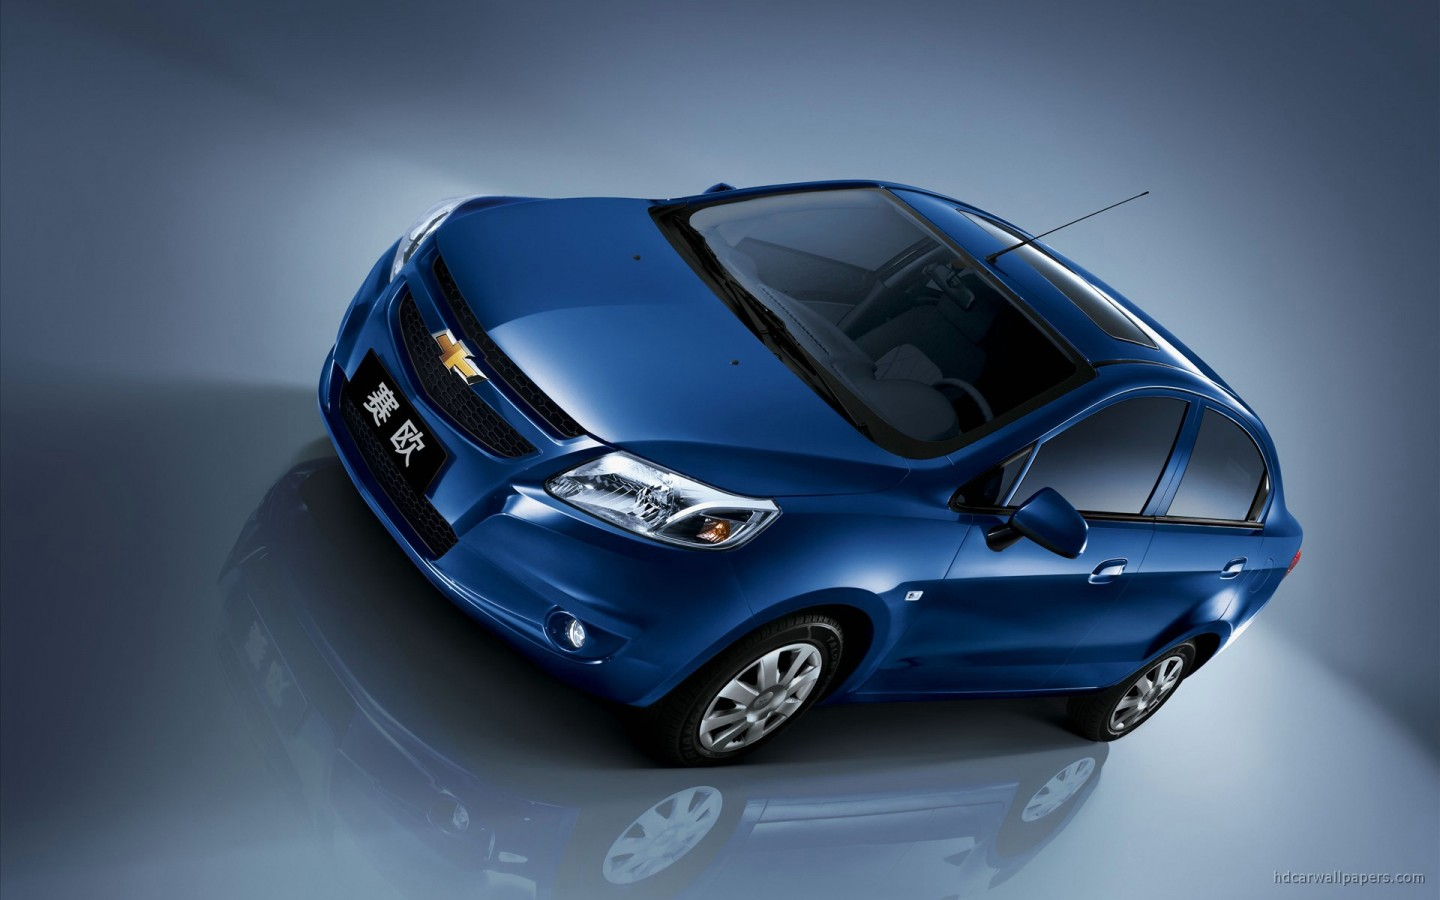 2011 Chevrolet New Small Car Wallpaper Hd Car Wallpapers